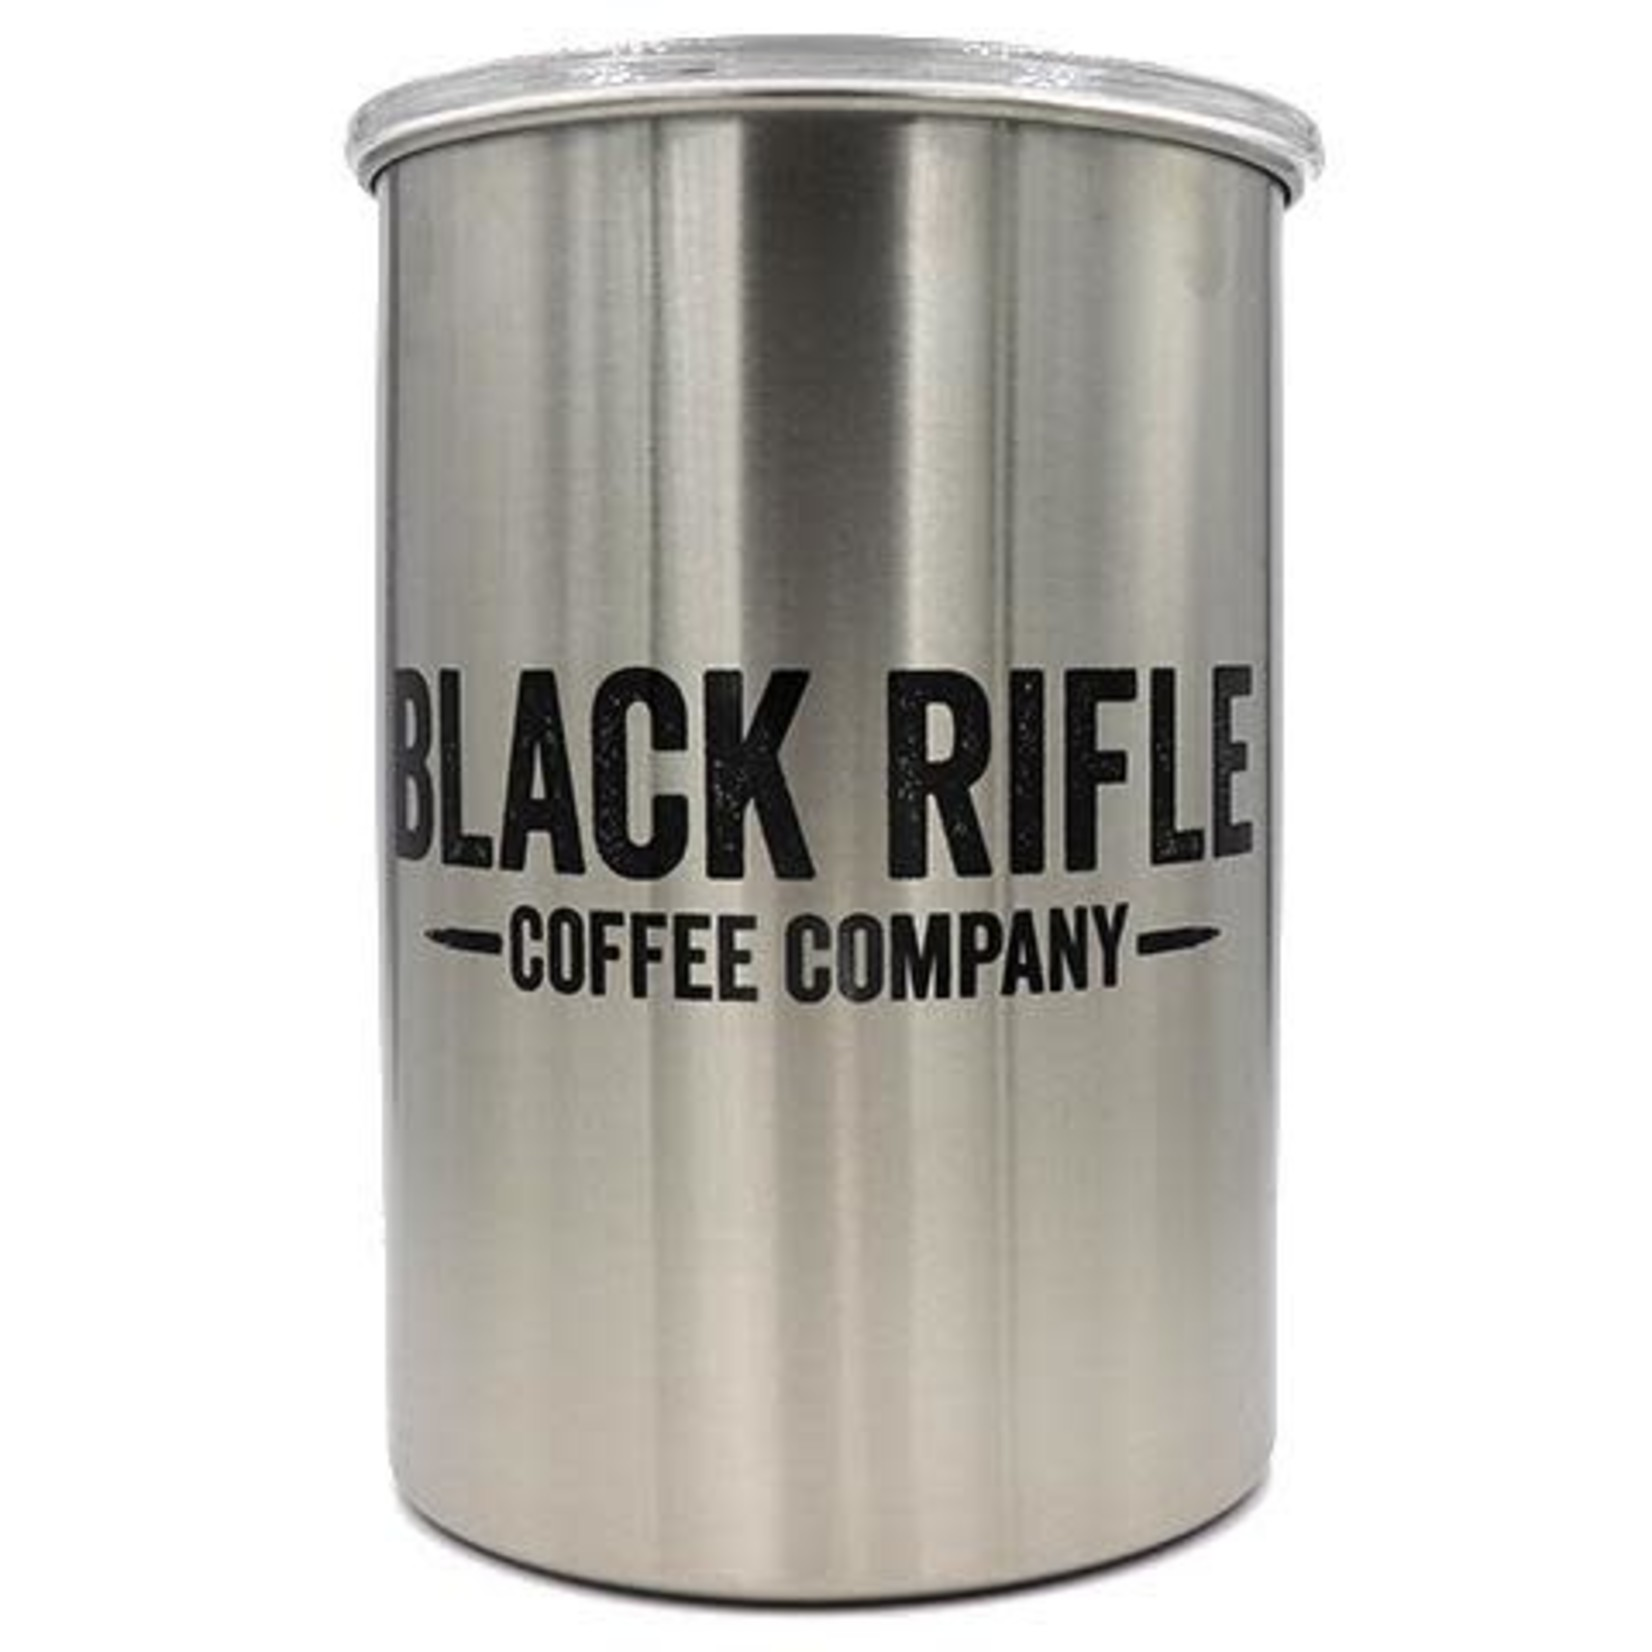 Black Rifle Coffee Black Rifle Coffee Company Airtight Container Stainless Steel